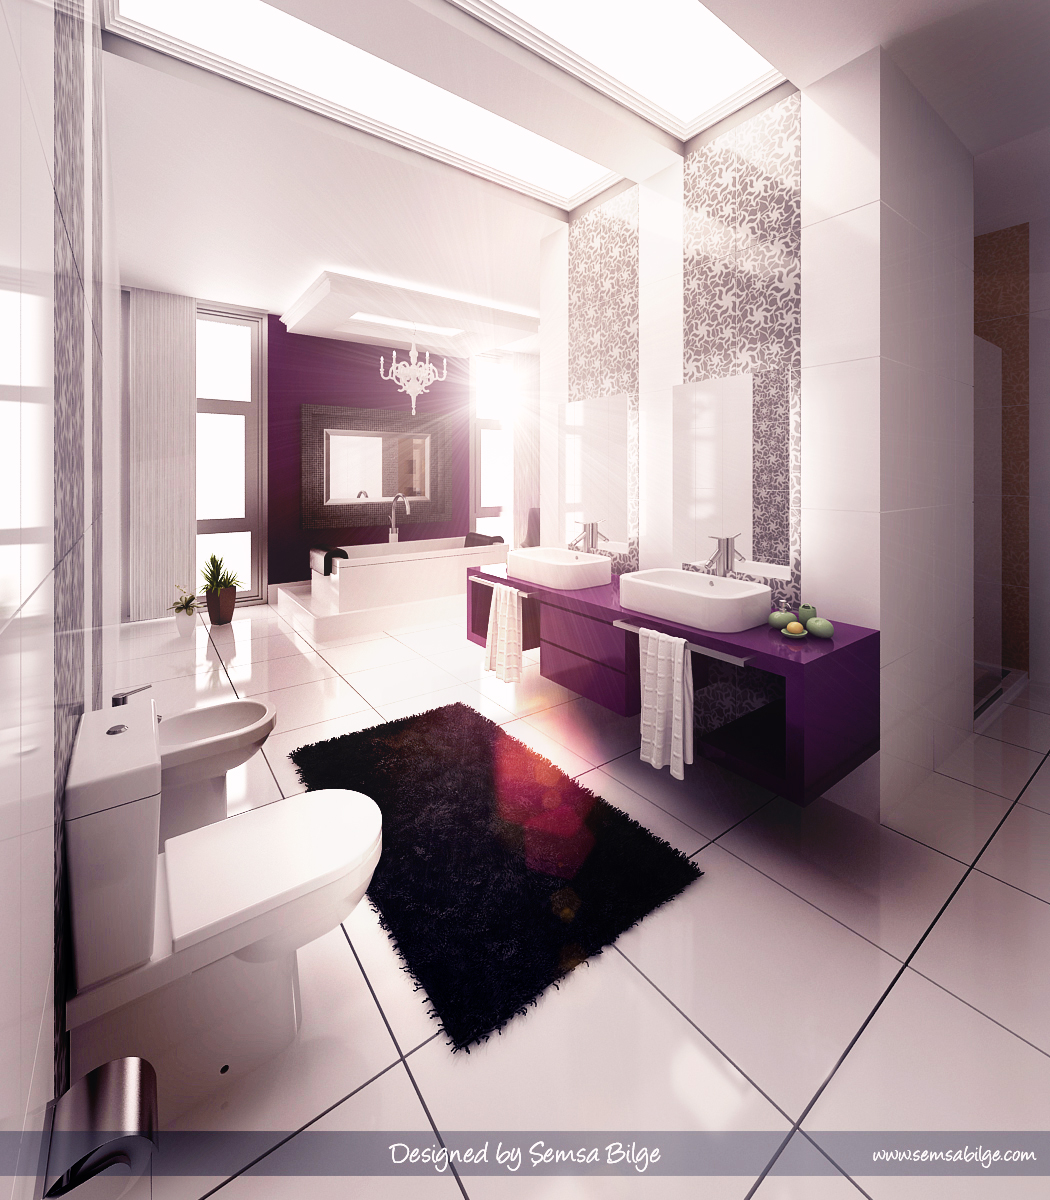 Beautiful Bathroom Design Pictures : Beautiful bathroom designs ideas interior design decorating